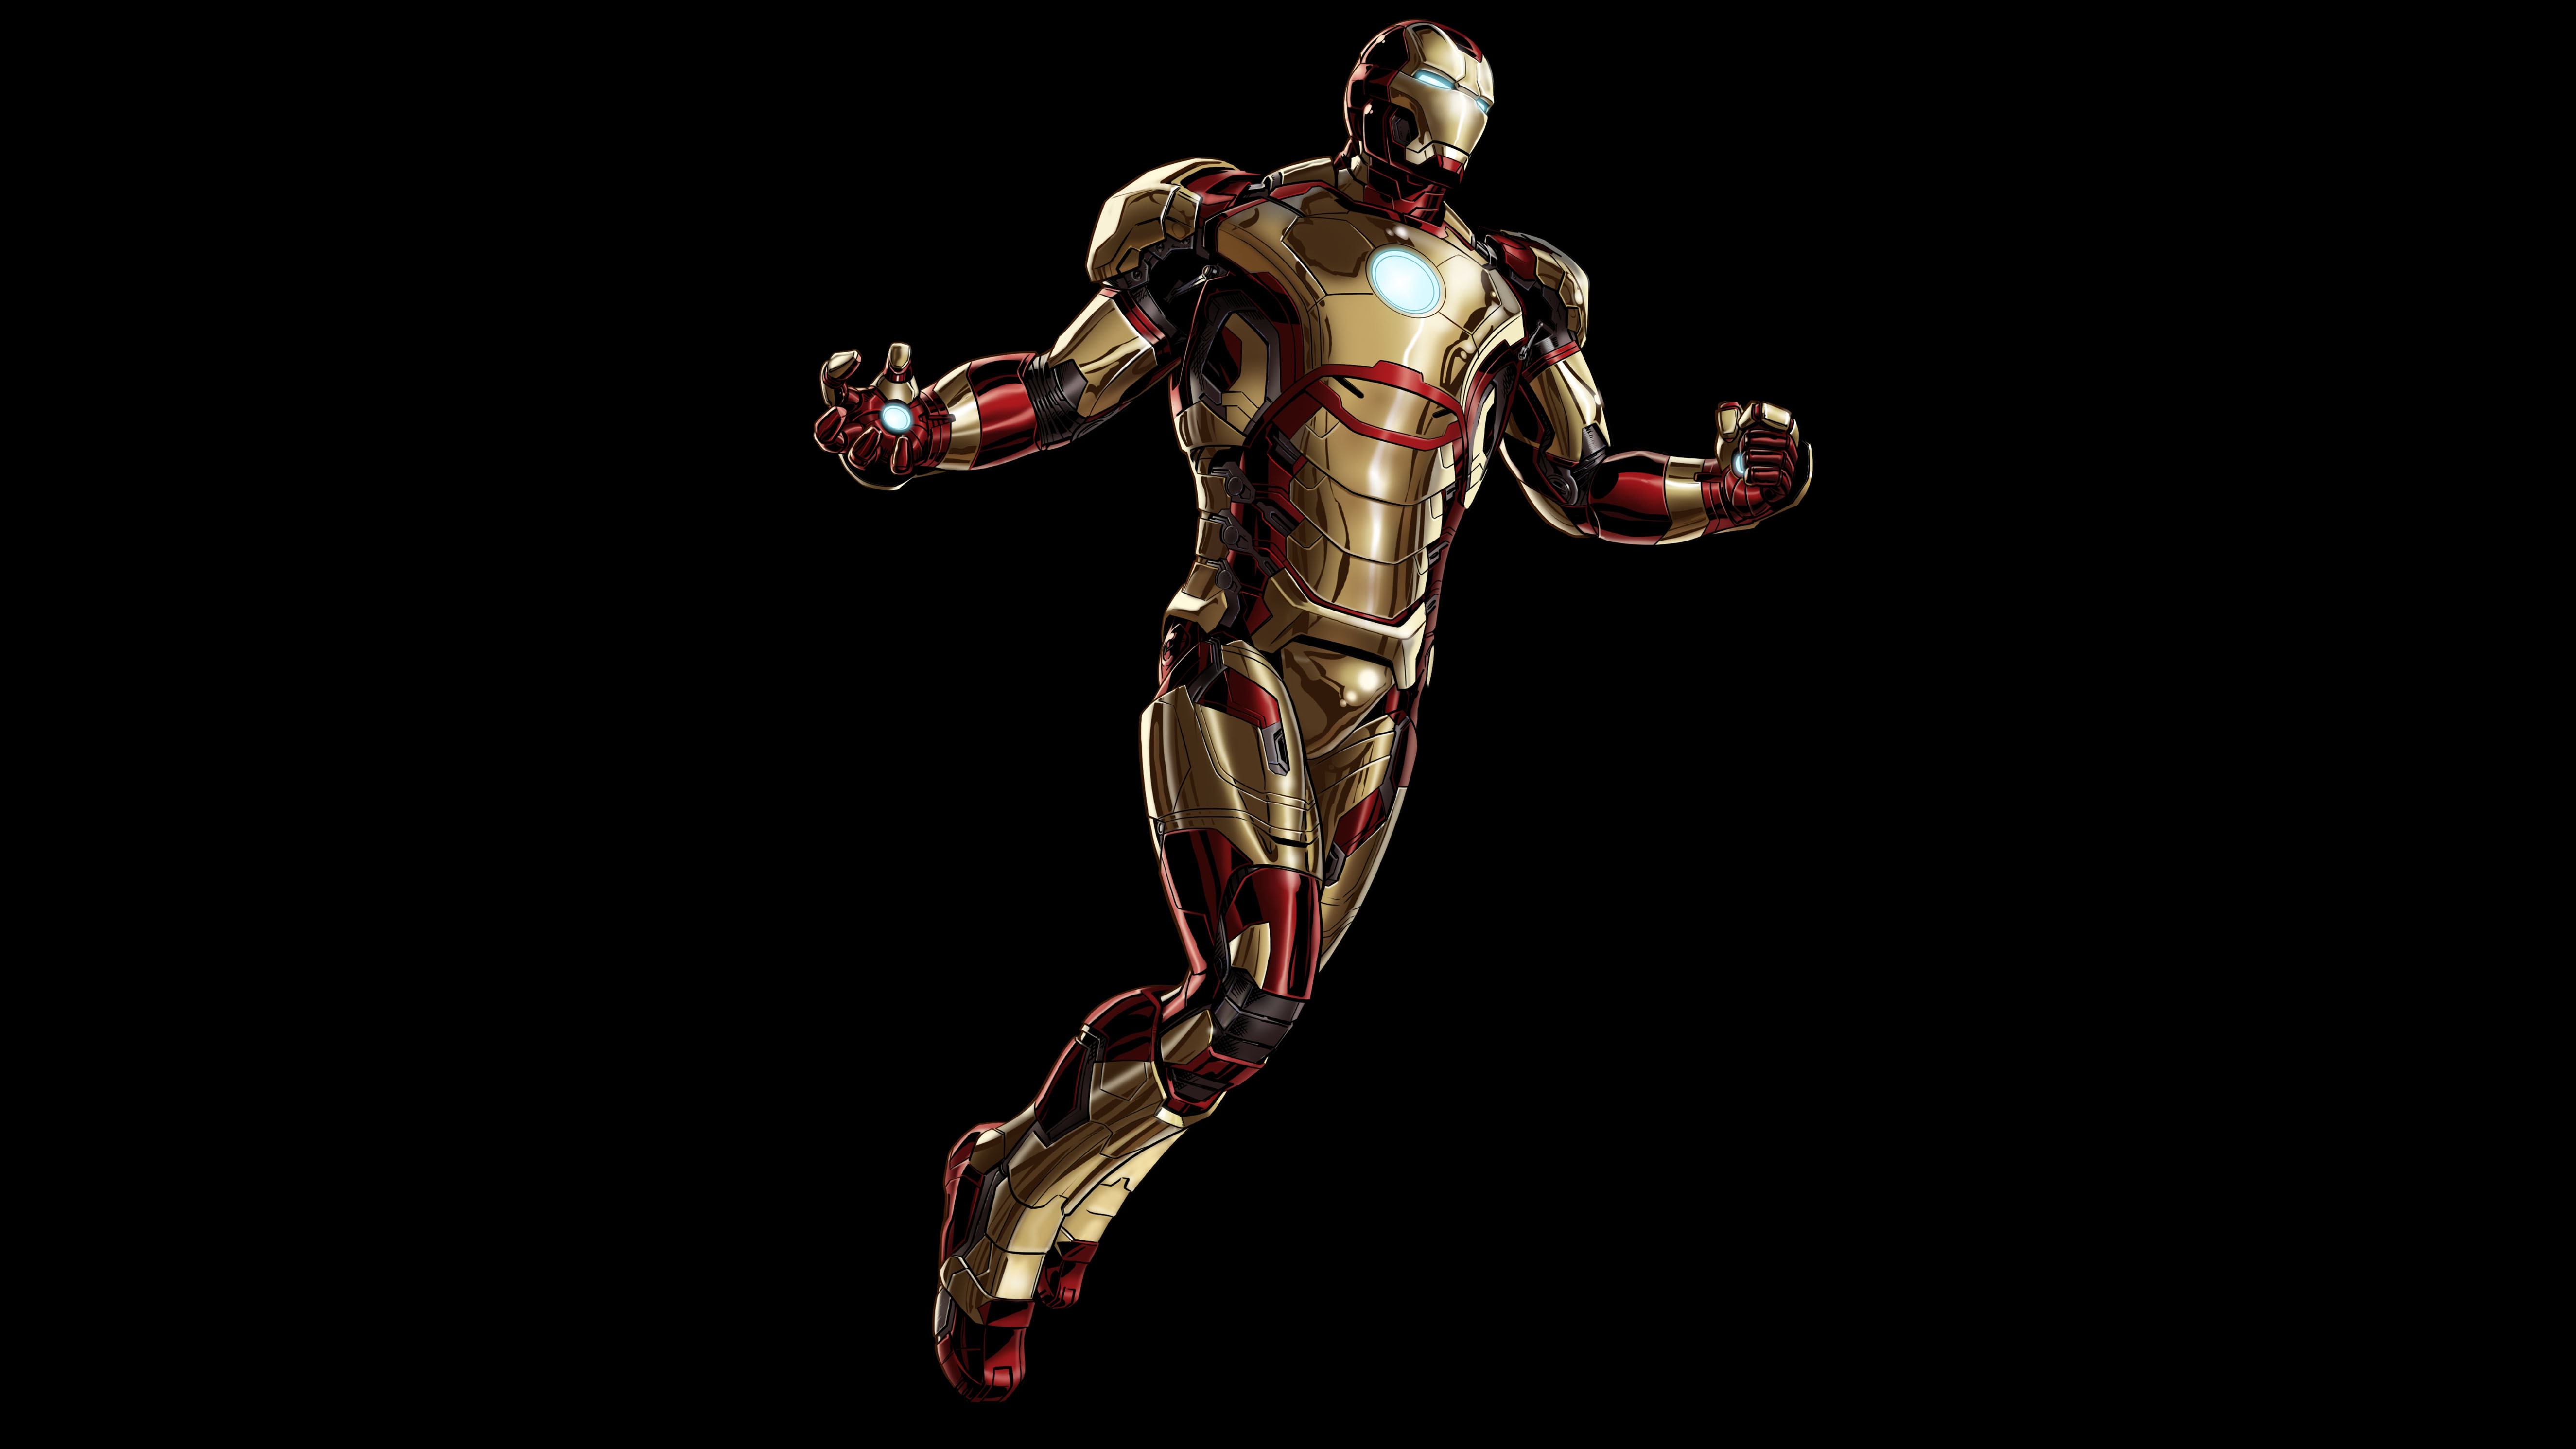 37 4k Ultra Hd Iron Man Wallpapers Background Images Wallpaper Abyss